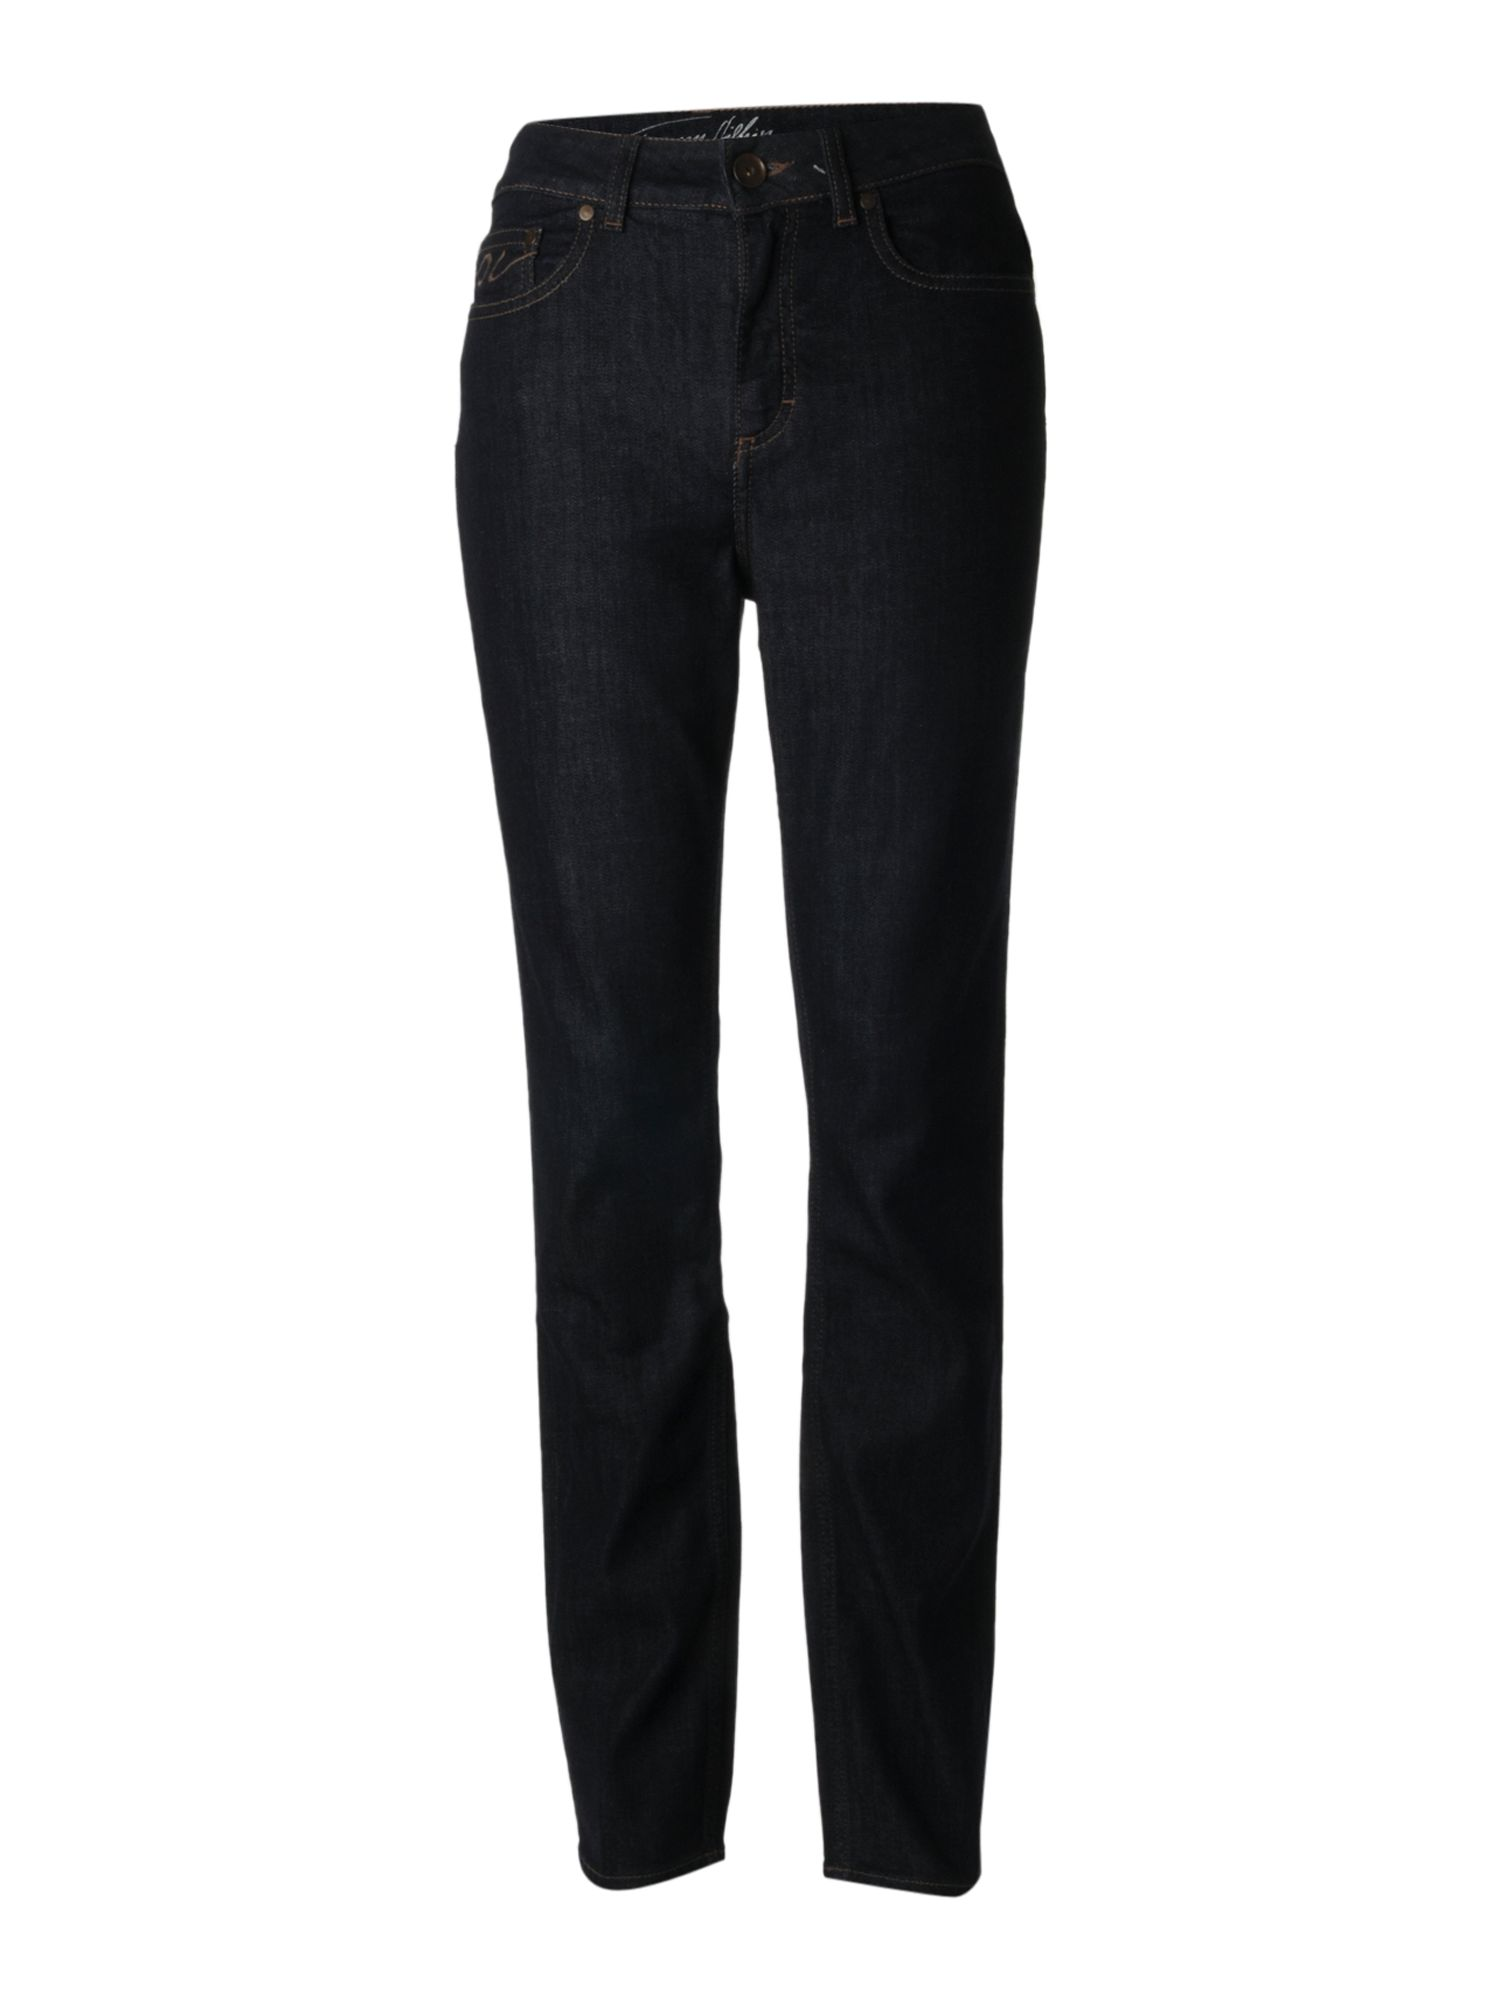 Paris high rise denim pant